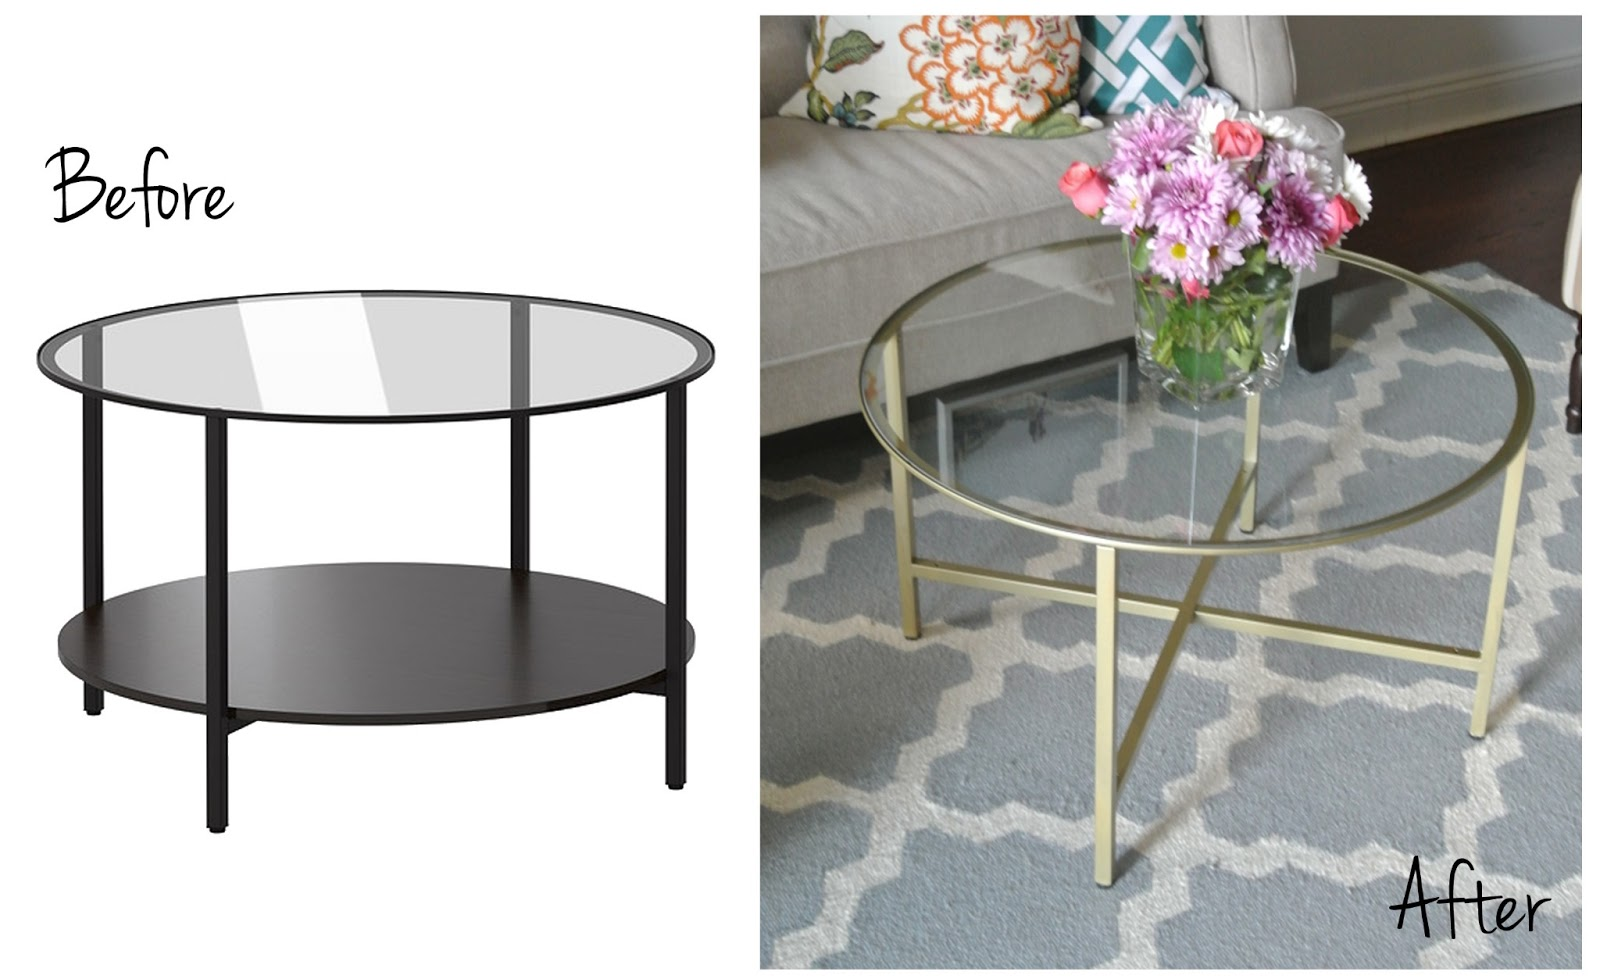 Ikea Vittsjo Coffee Table Olive Lane: Ikea Vittsjo Shelving Unit Hack (sort Of)